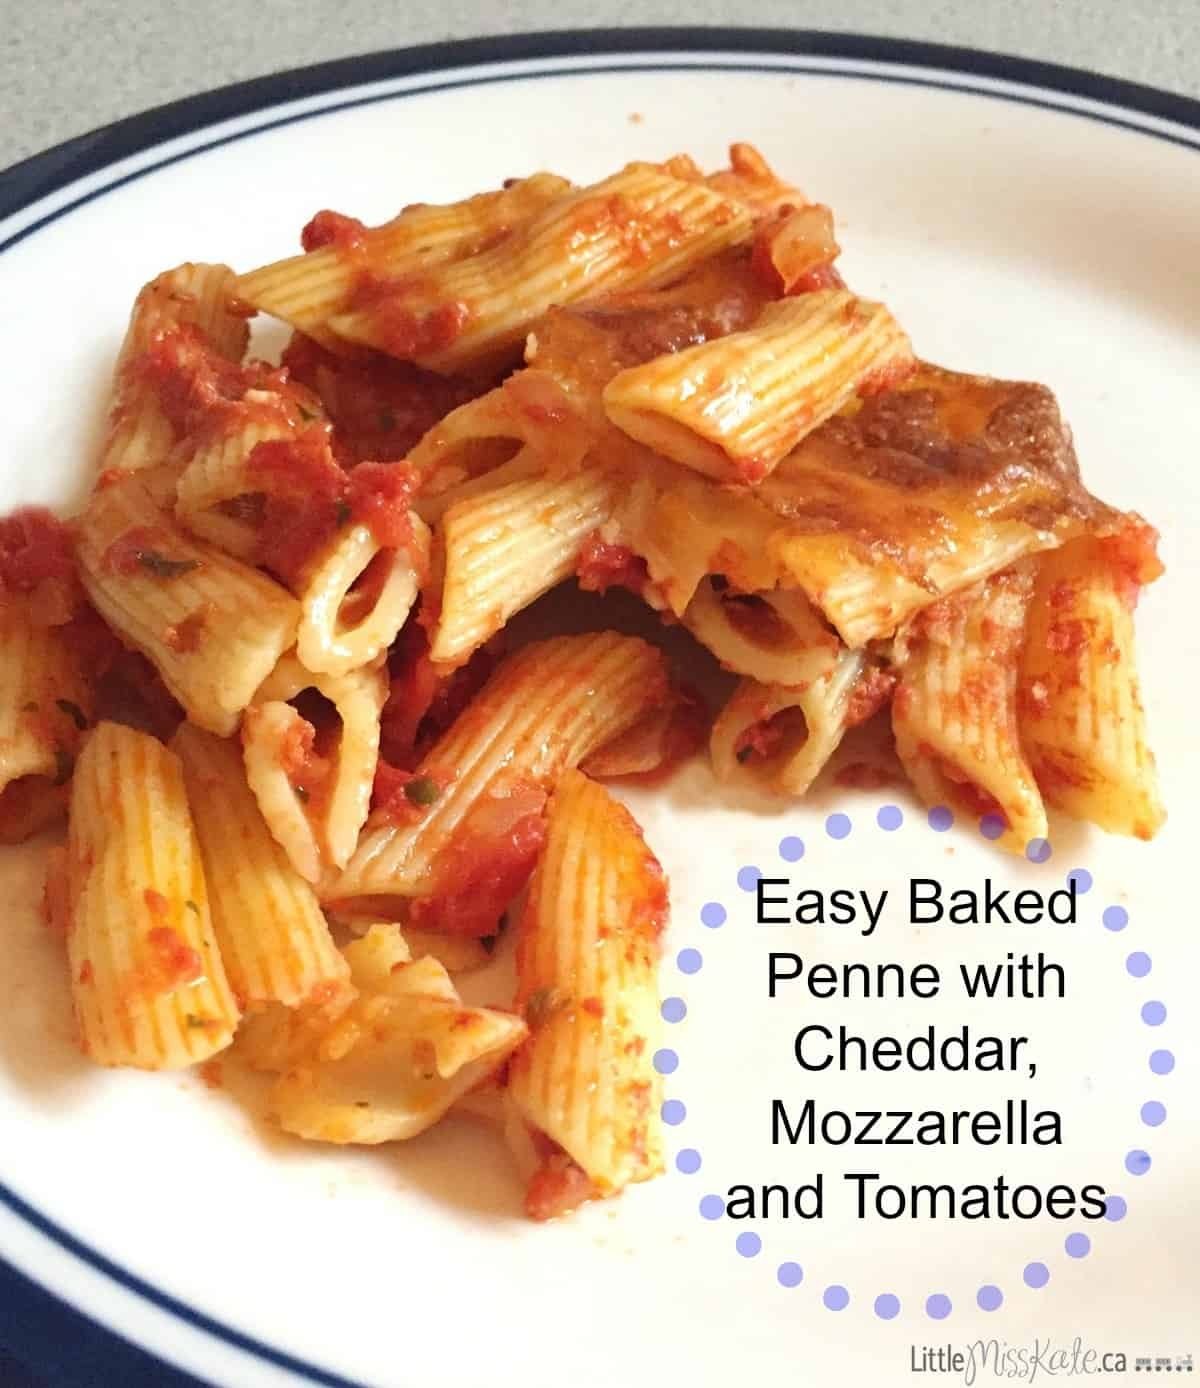 Easy Baked Penne with Cheddar, Mozzarella and Tomatoes Recipe & Award Winning Cheeses at Loblaws